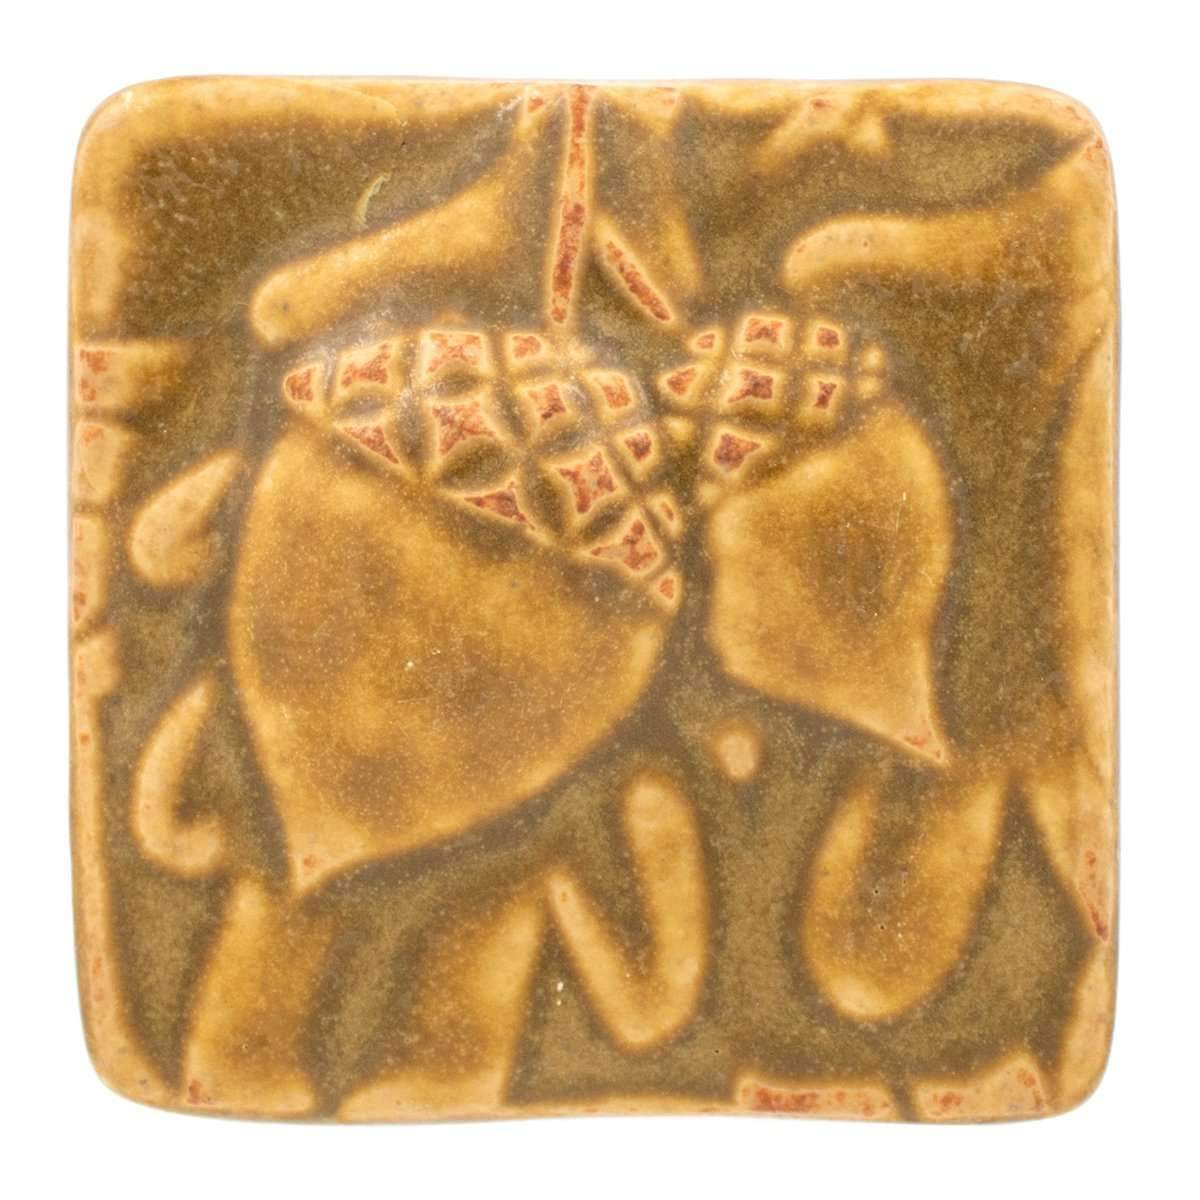 3x3 Acorn Pewabic Tile - Wheat